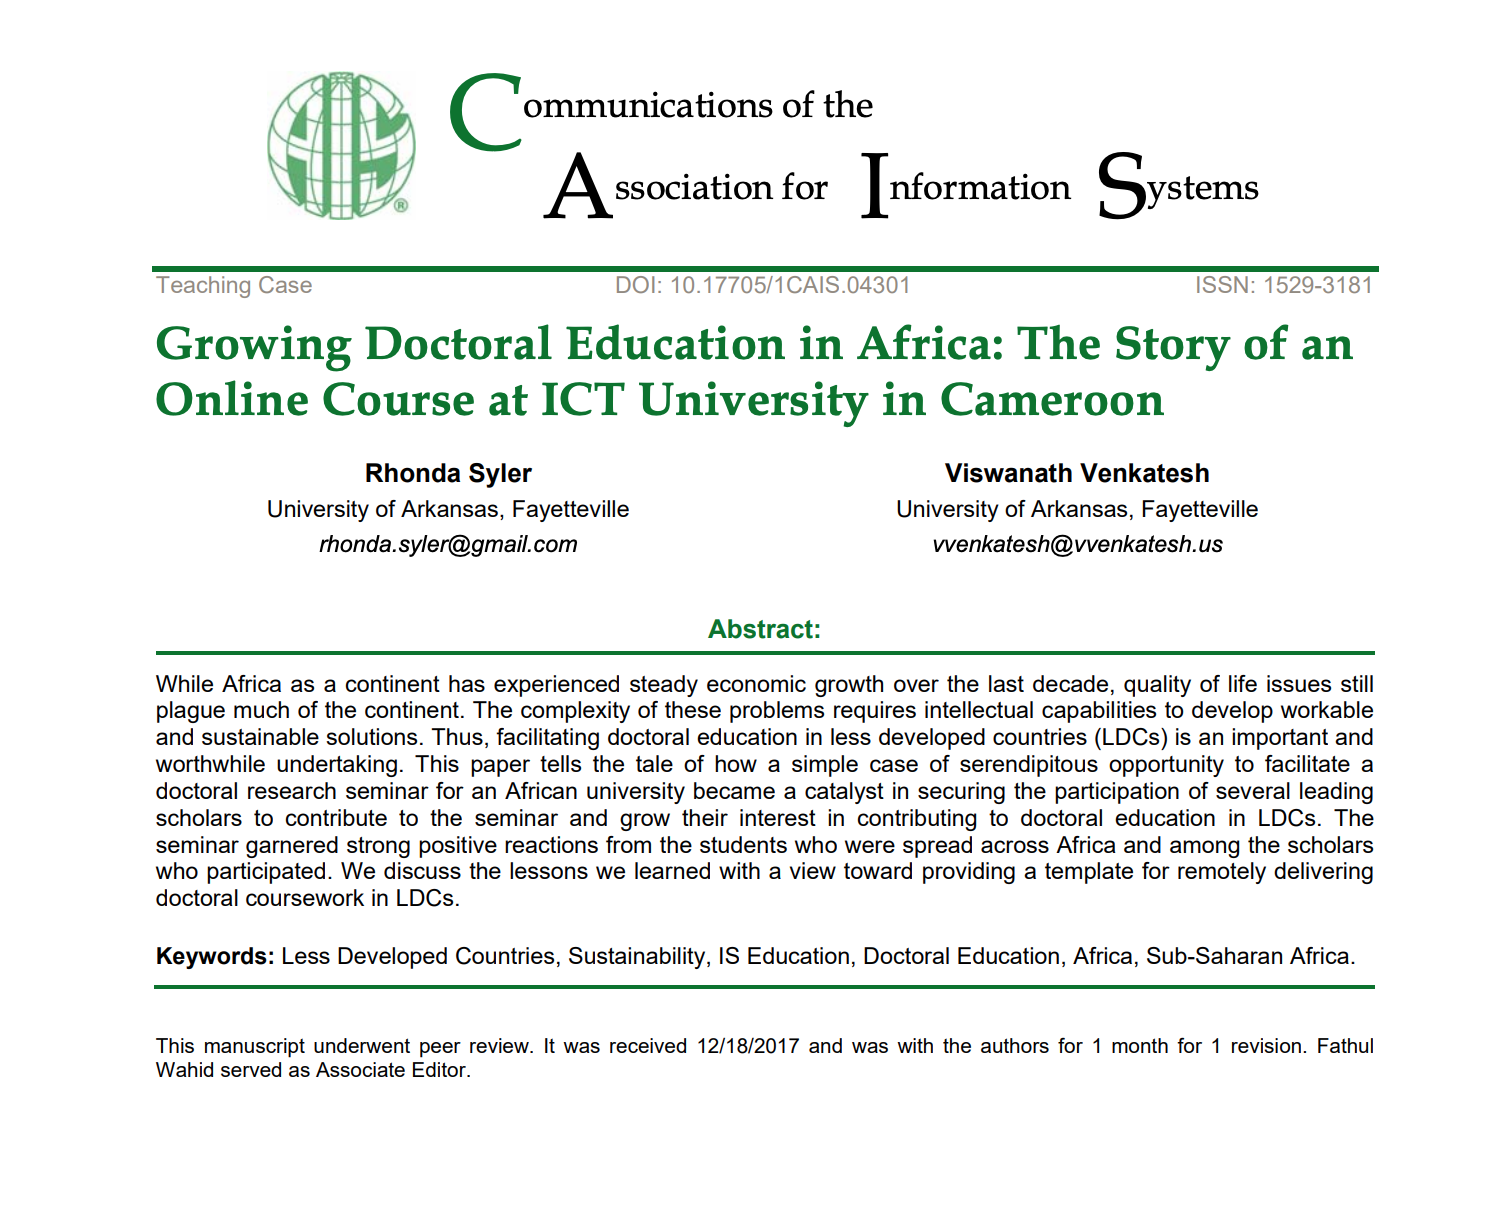 Growing Doctoral Education in Africa: The Story of an Online Course at ICT University in Cameroon